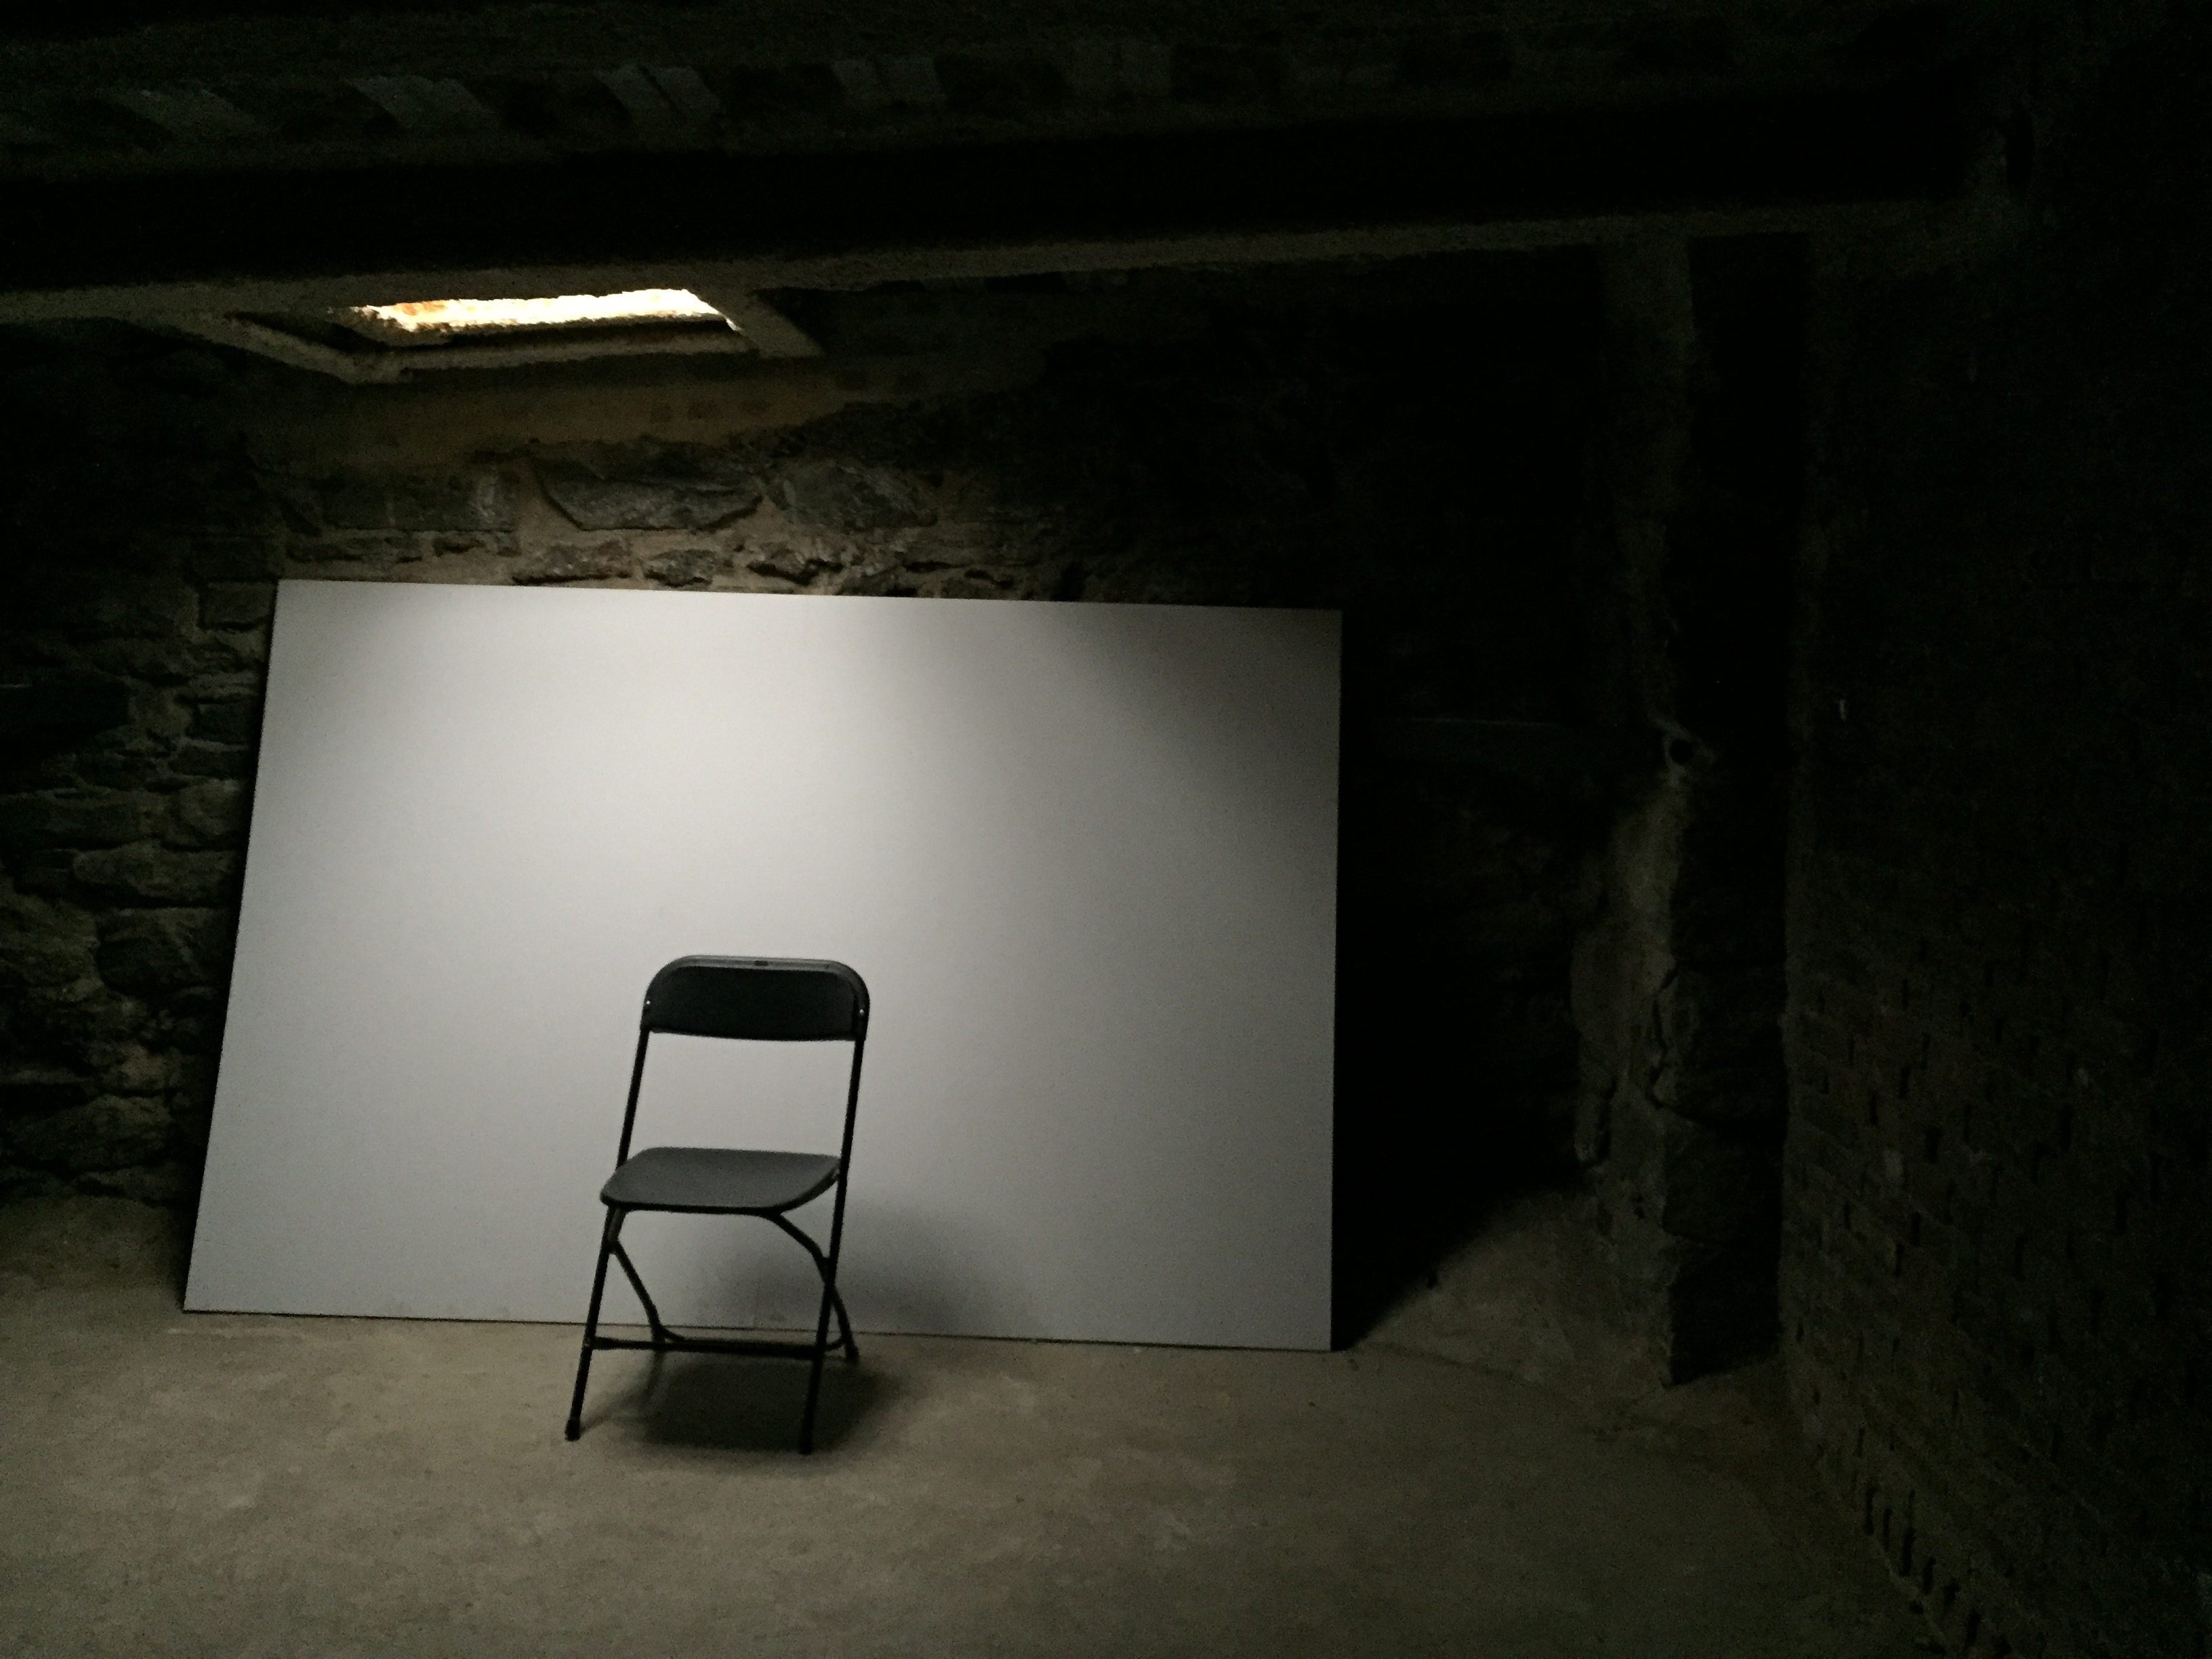 chair sitting alone in the dark and the unknown art